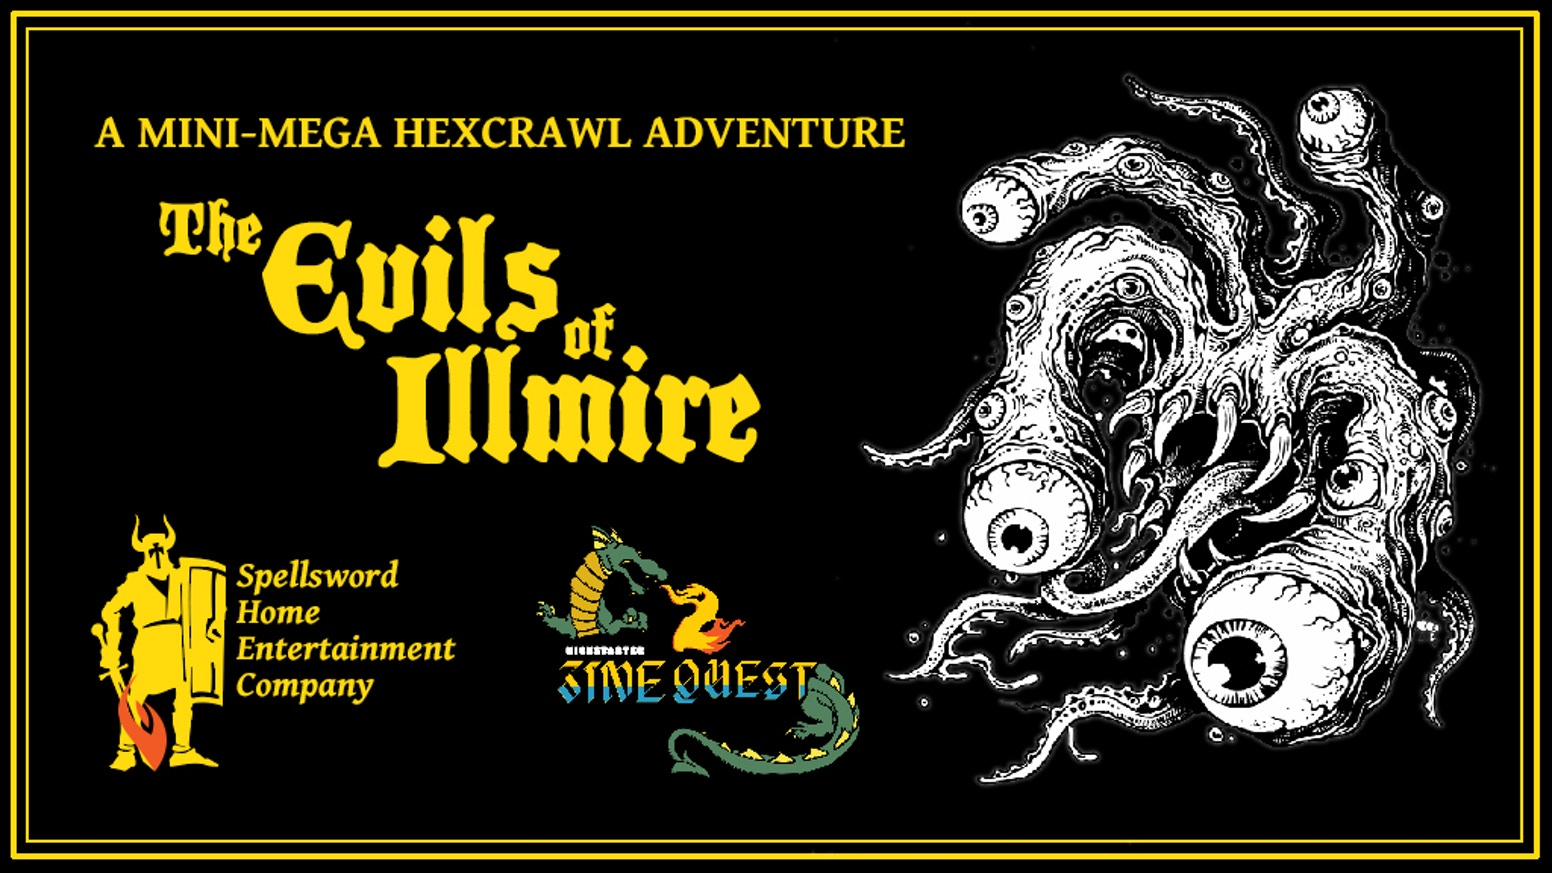 A 68-page jam-packed RPG adventure featuring a wicked cult, a doomed village, a dangerous wilderness, many deadly dungeons, and more!